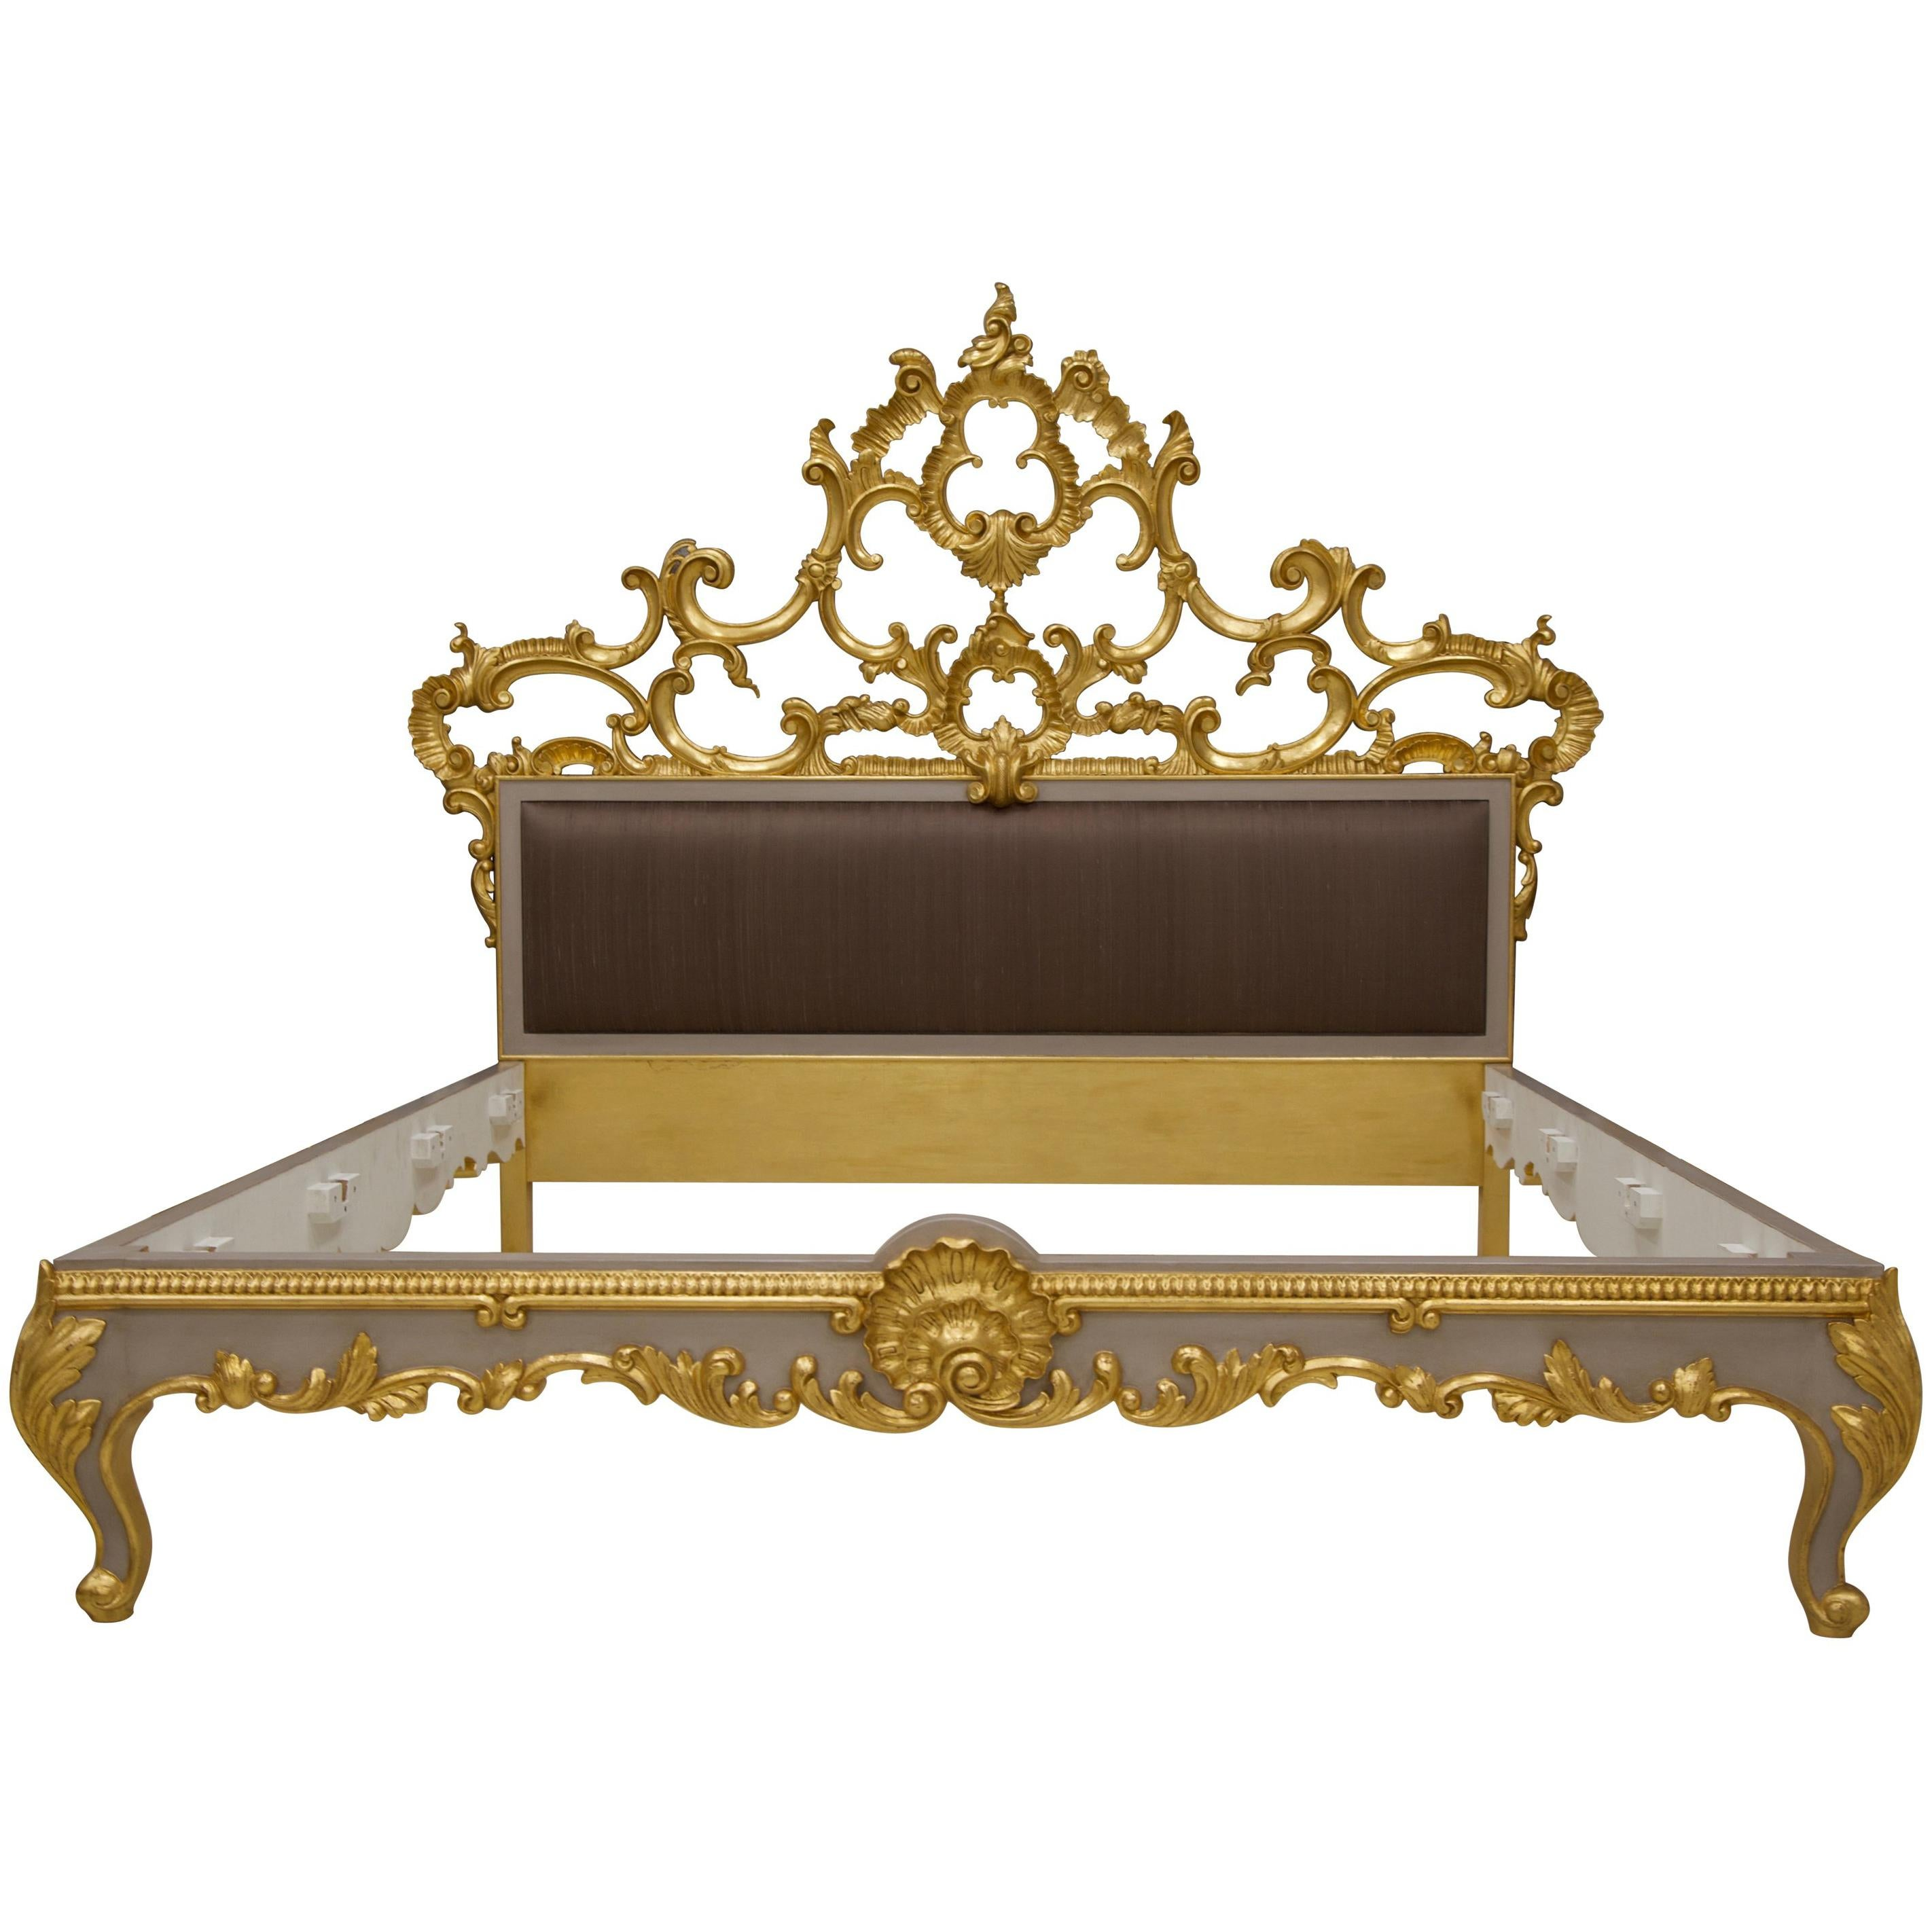 Venetian Bed, LXV Style, Hand Crafted, Made By La Maison London